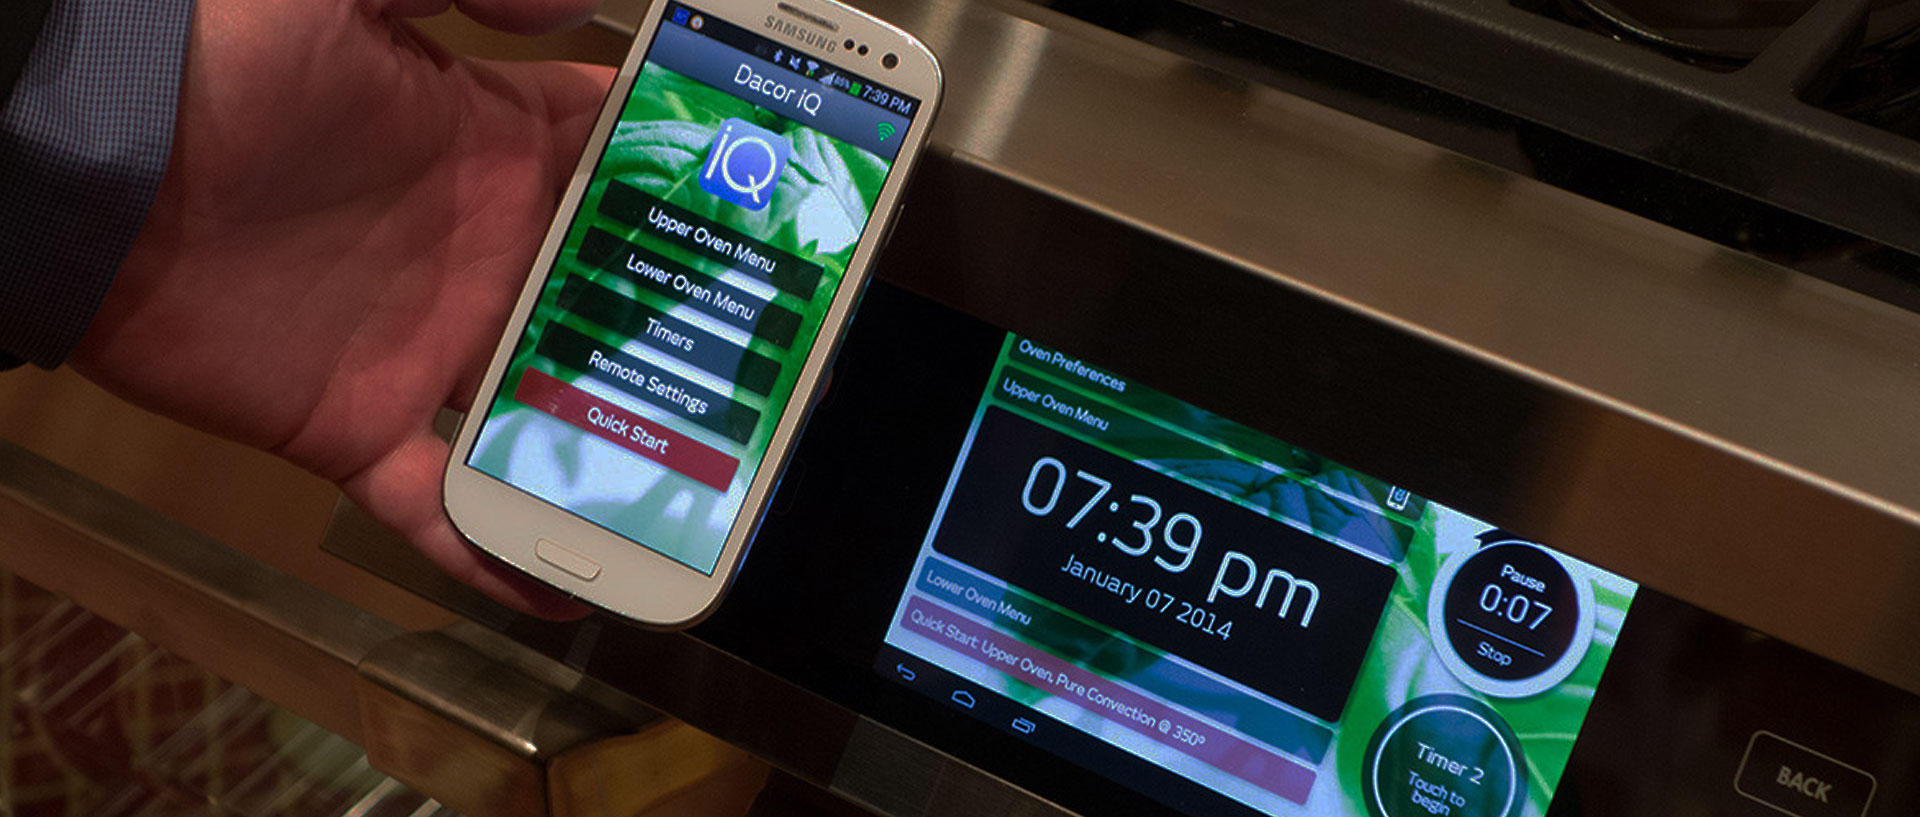 Dacor-Samsung iQ Kitchen App